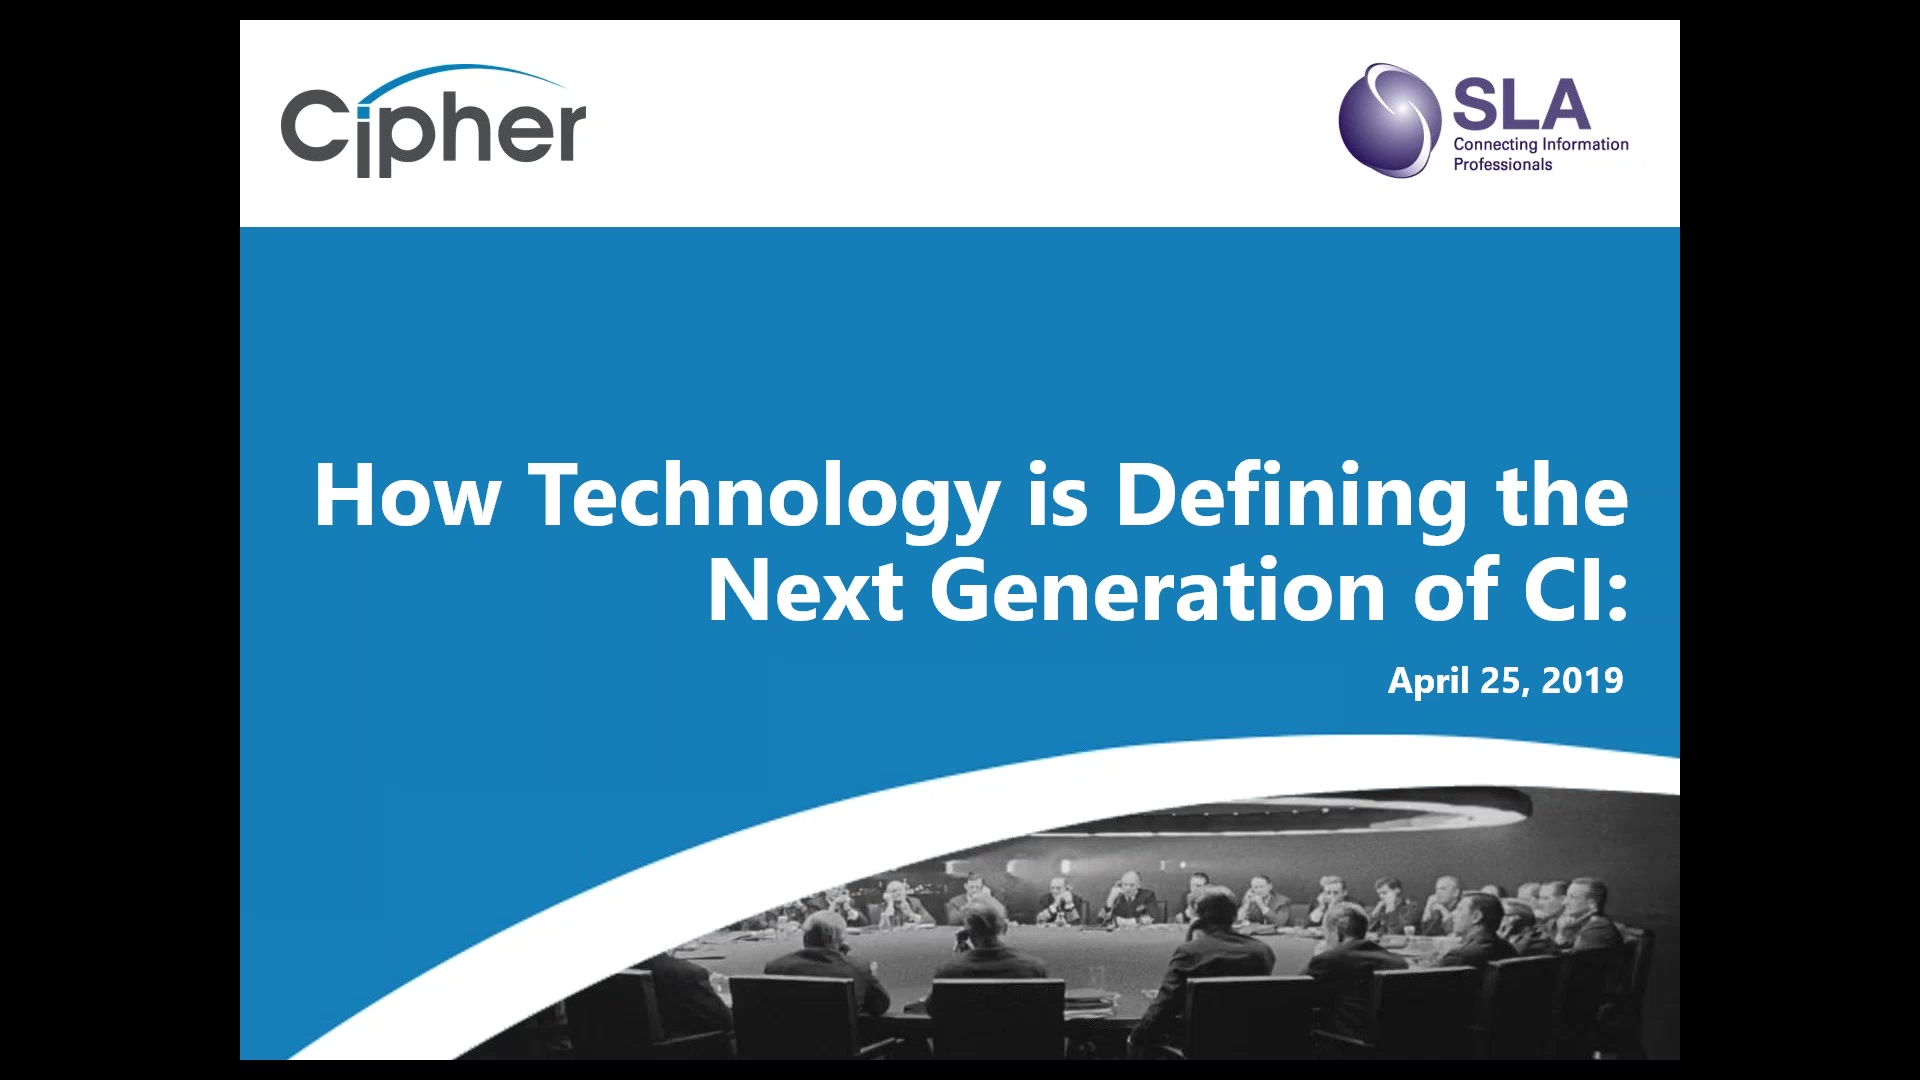 2019-04-25 12.06 How Technology is Defining the Next Generation of Competitive Intelligence